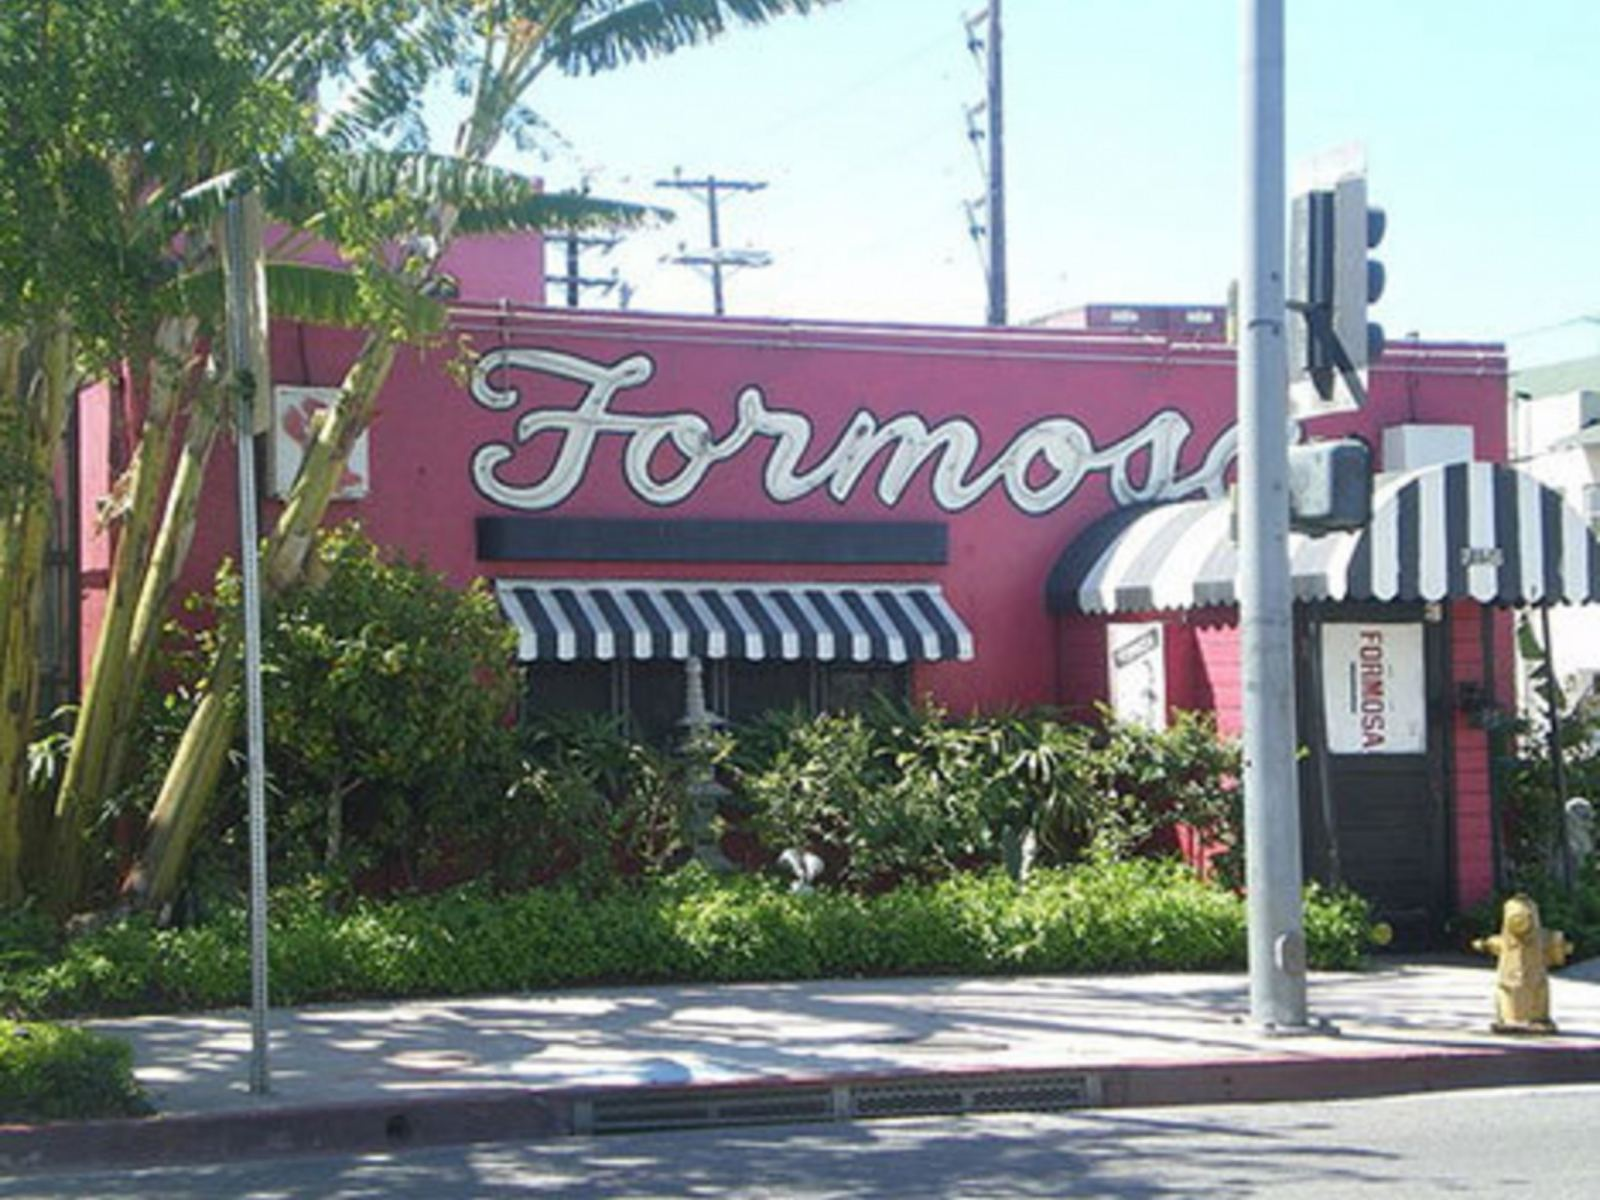 The Formosa Cafe